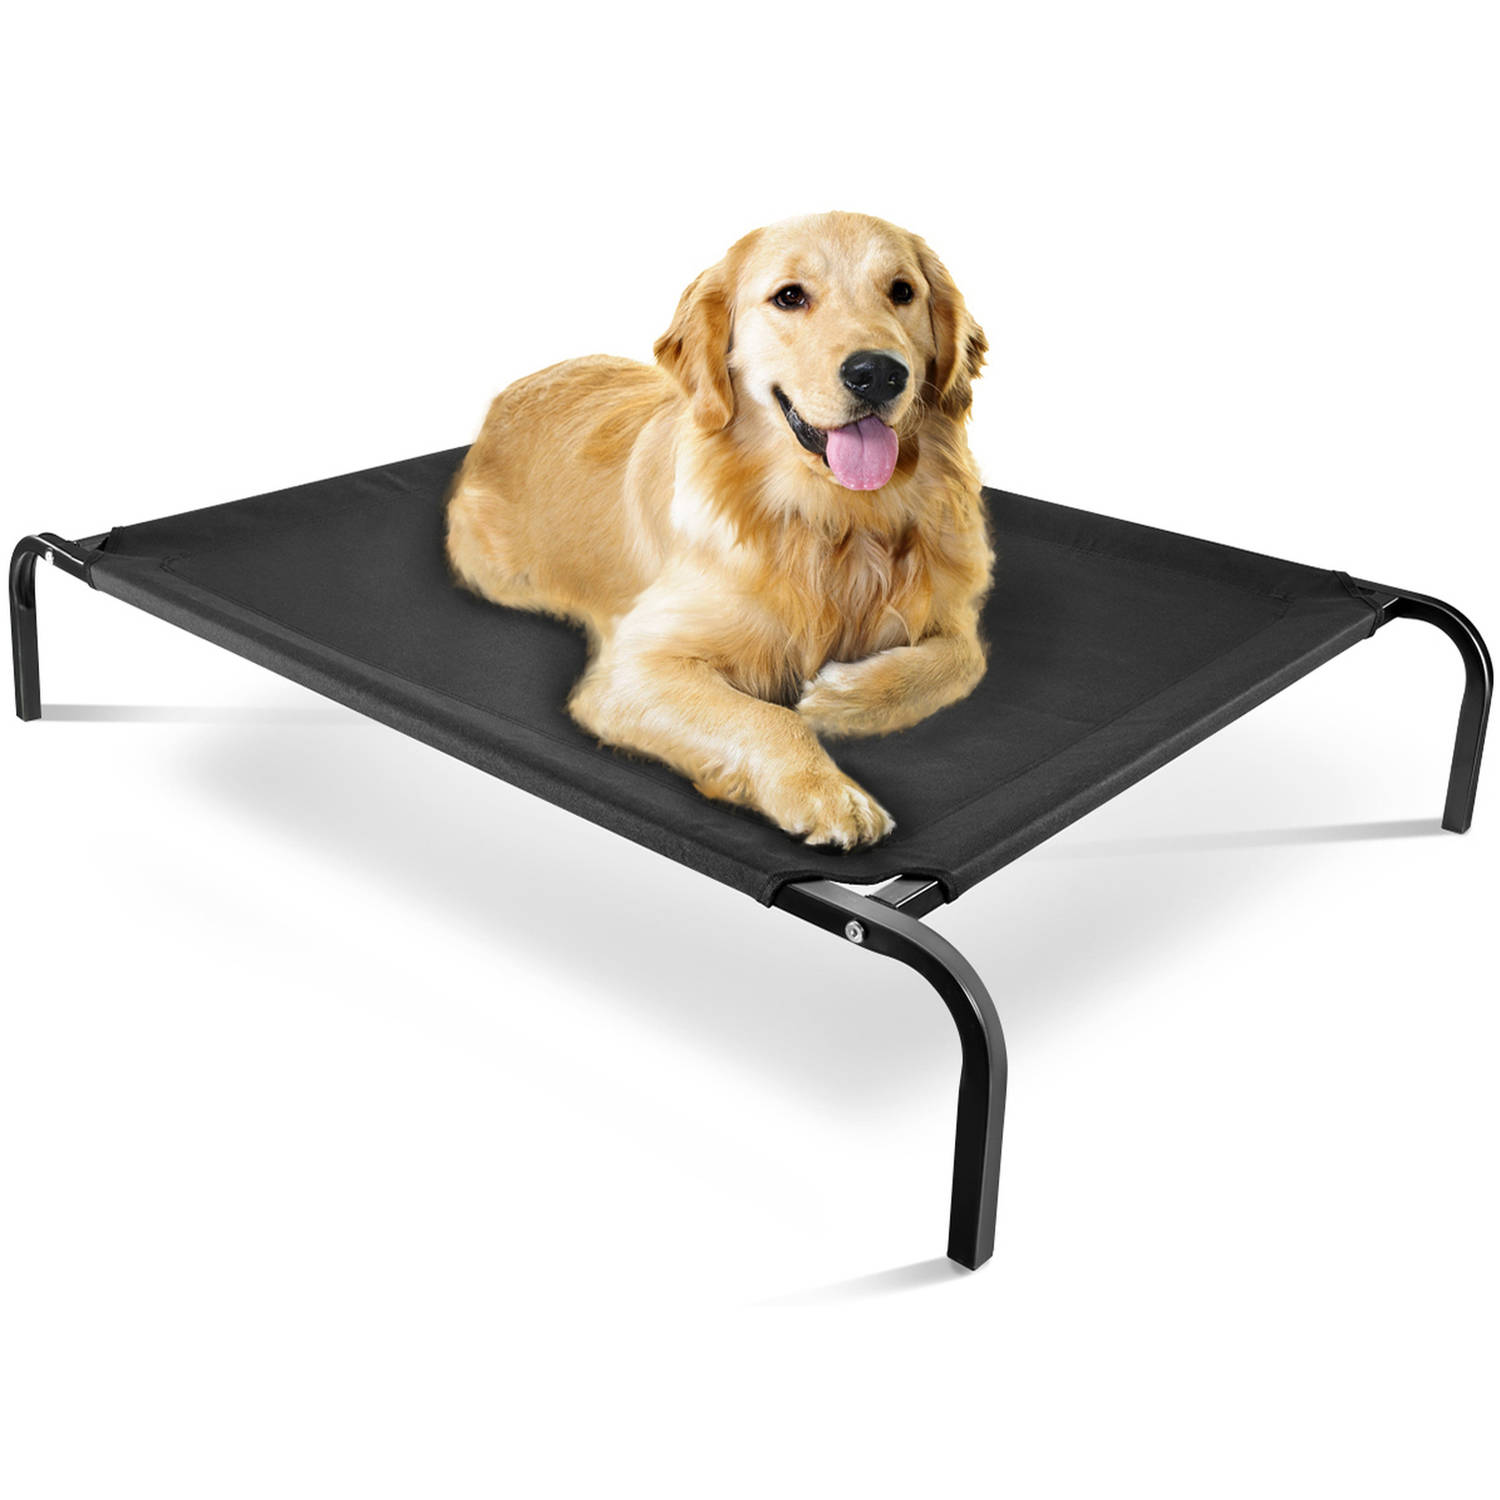 Oxgord Travel Gear Approved Steel-Framed Portable Elevated Pet Bed, Black